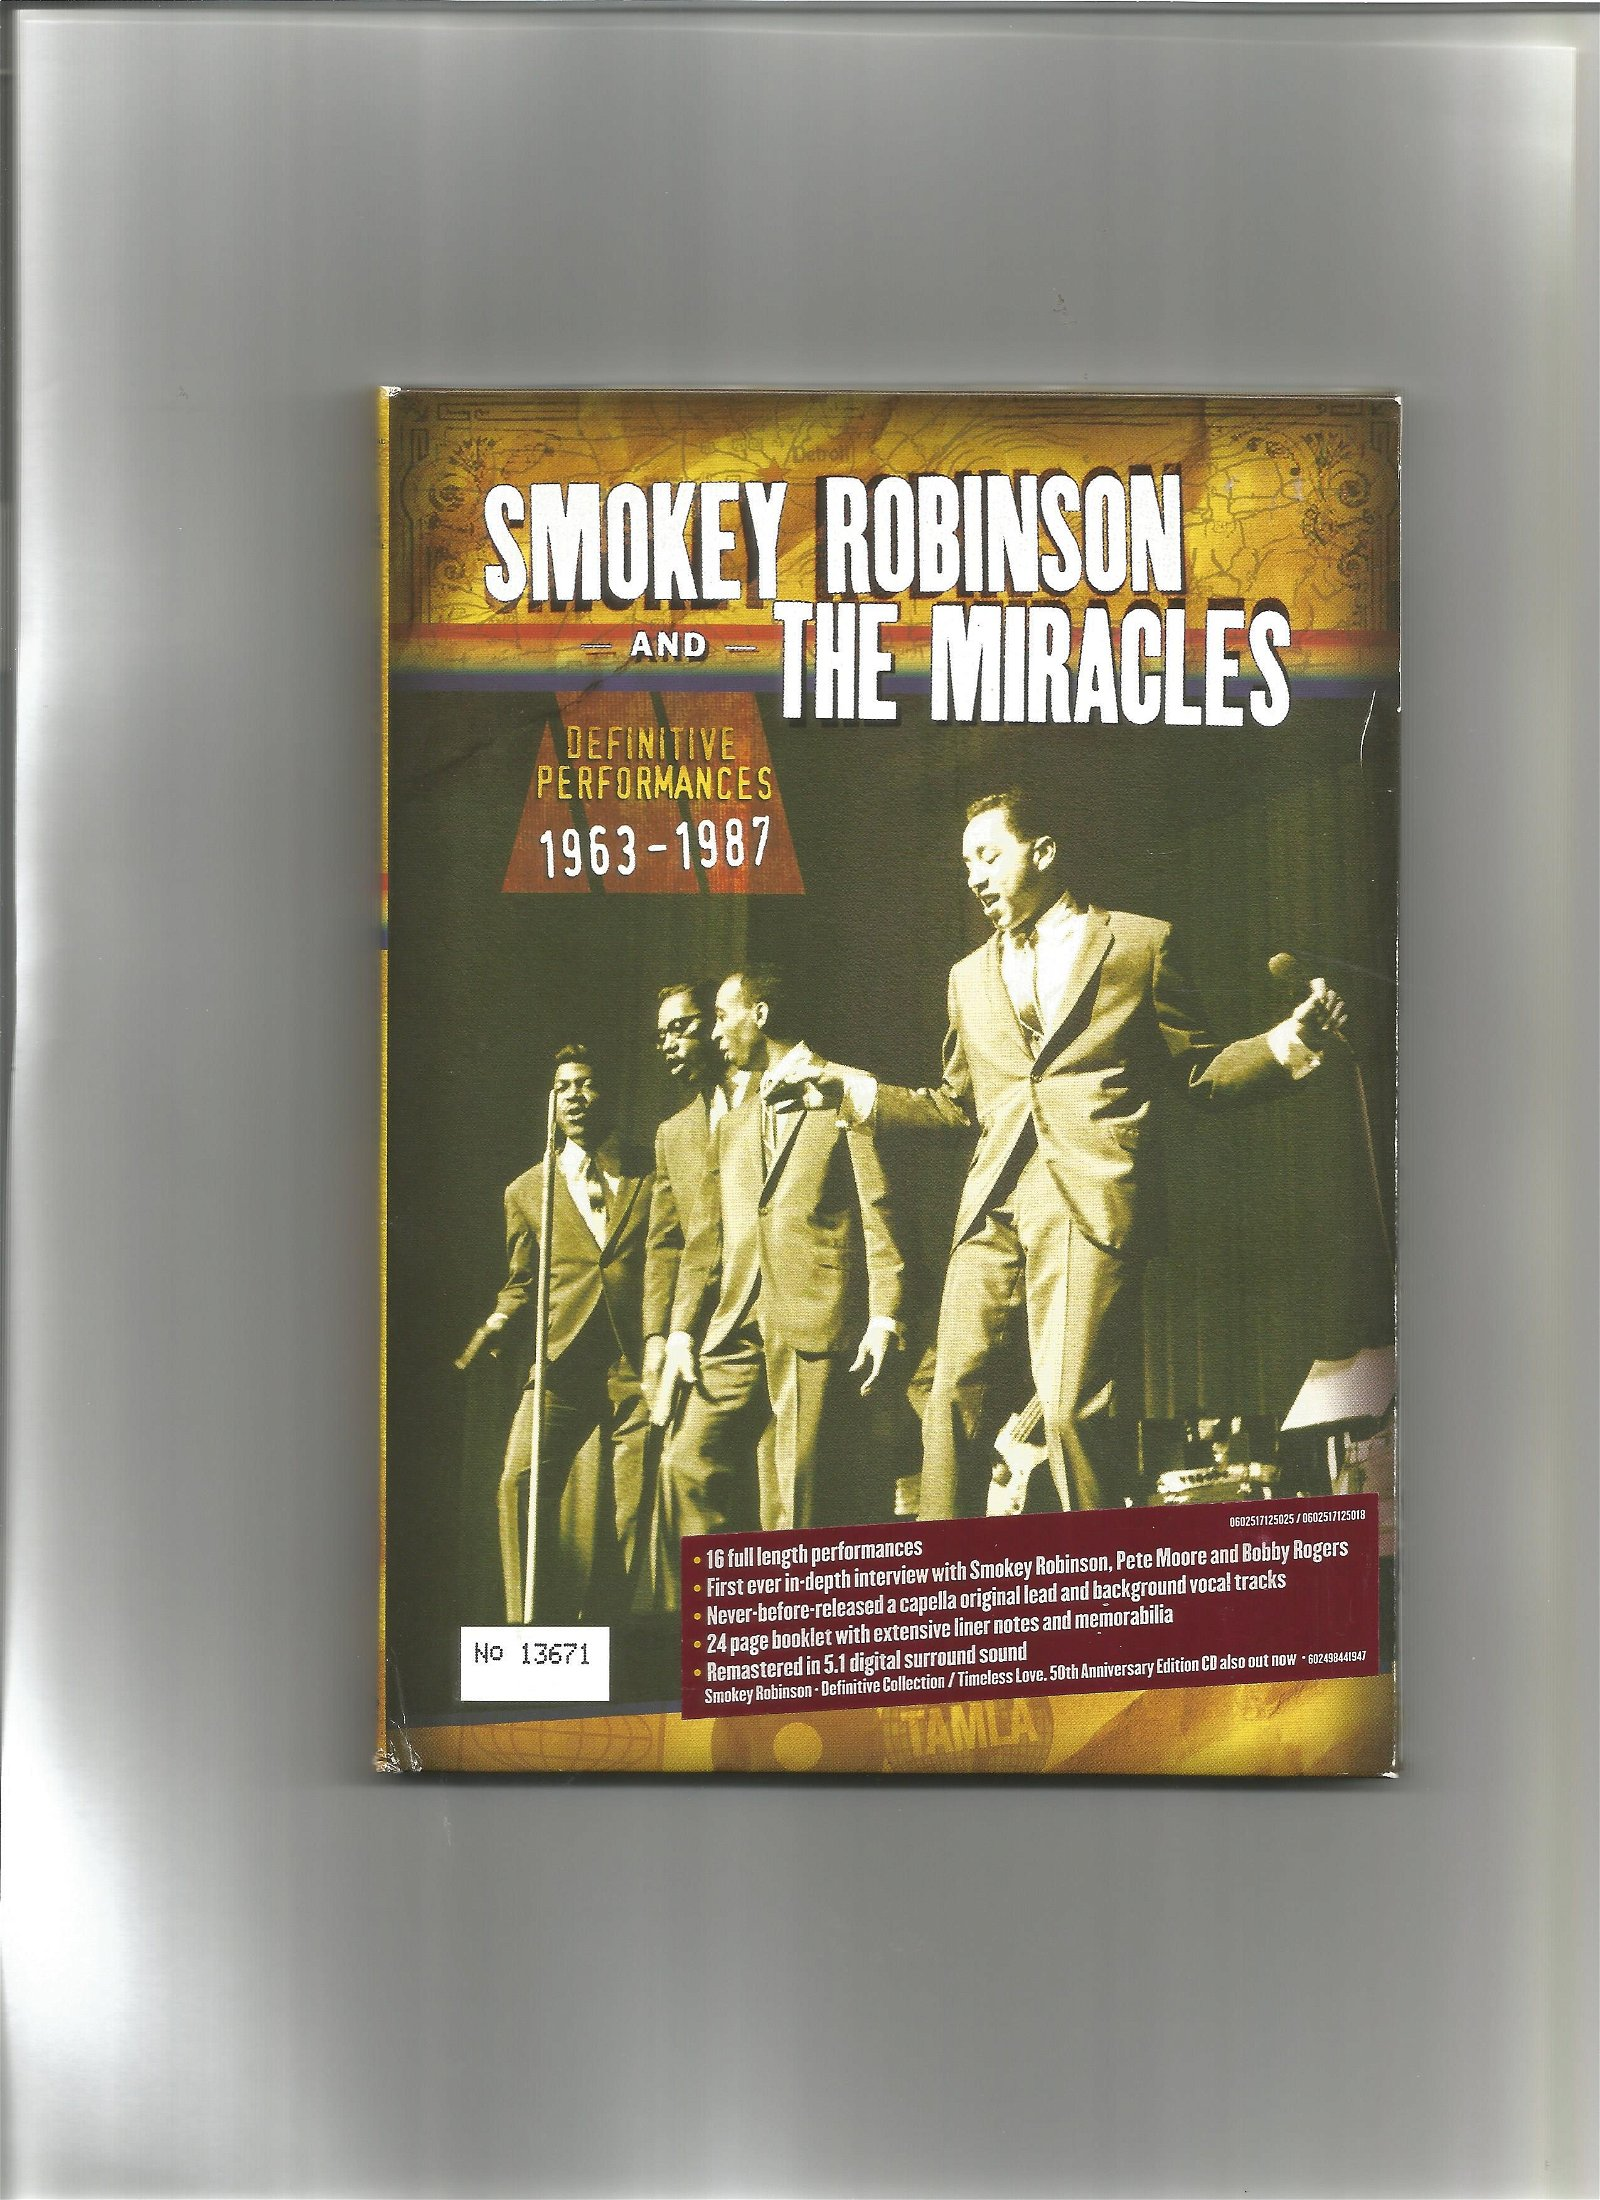 Smokey Robinson and the Miracles definitive